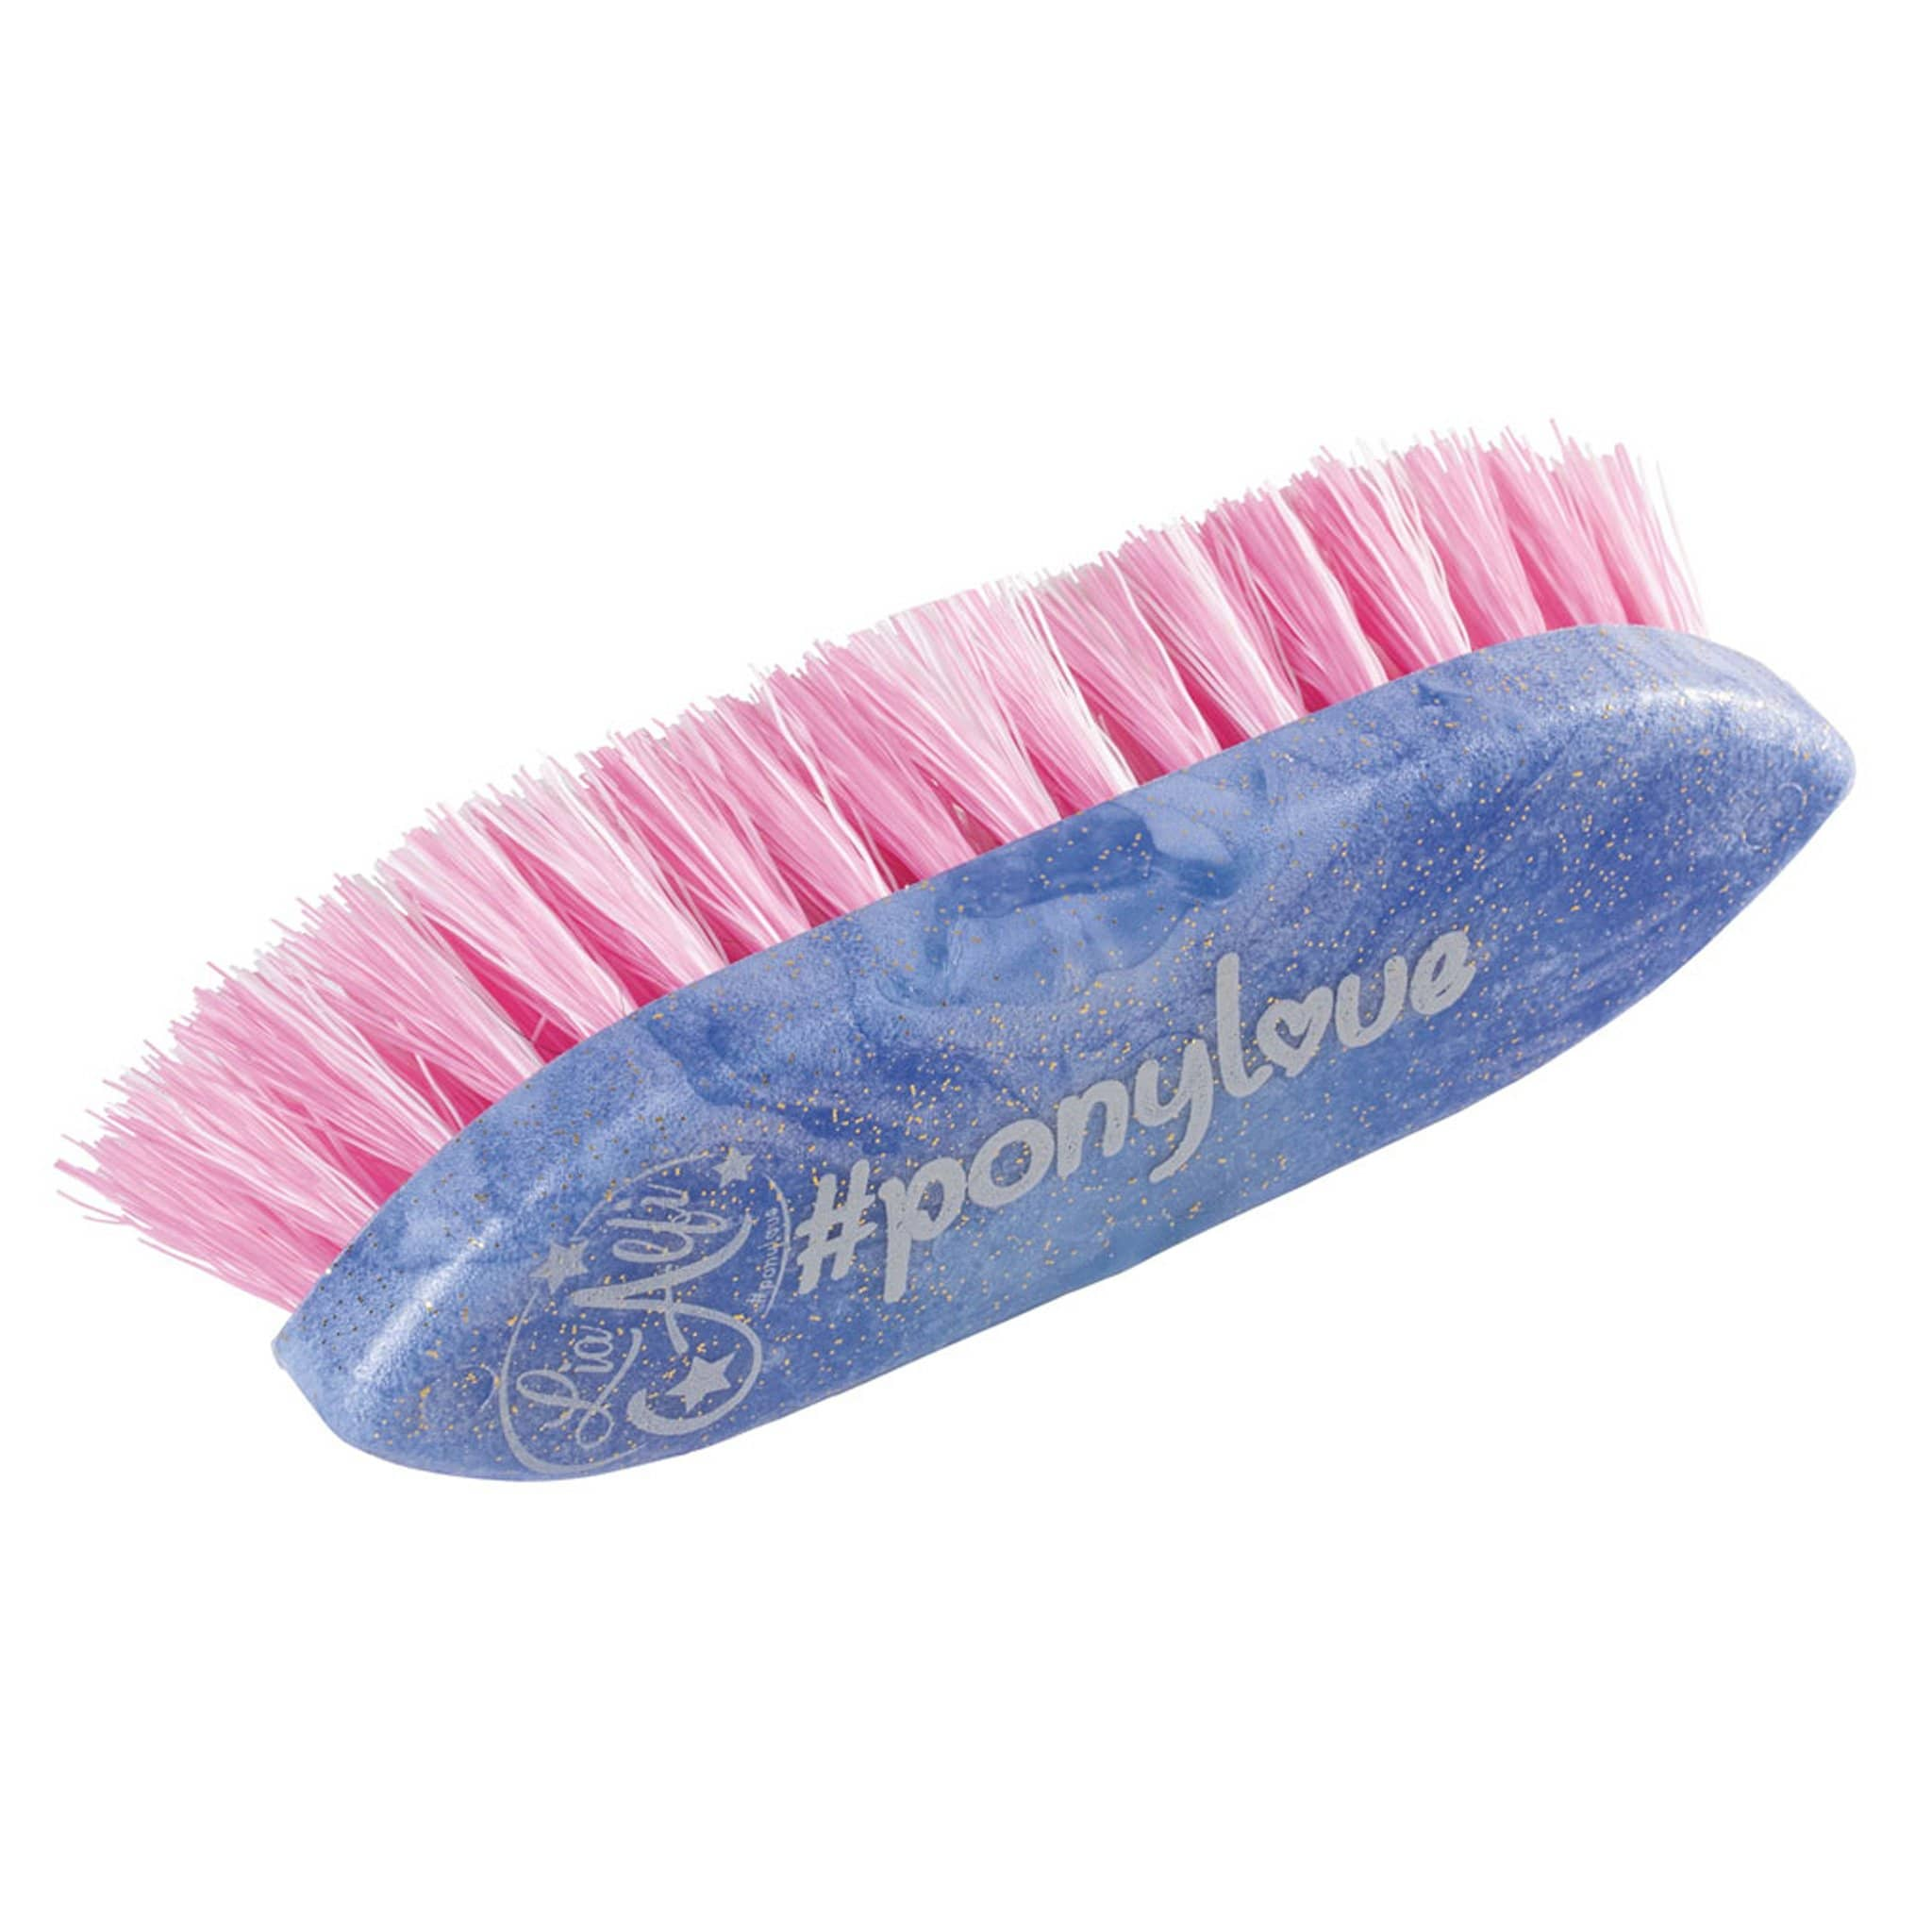 Haas Ponylove Mane Brush Blue and Pink 27748 3cm Bristles